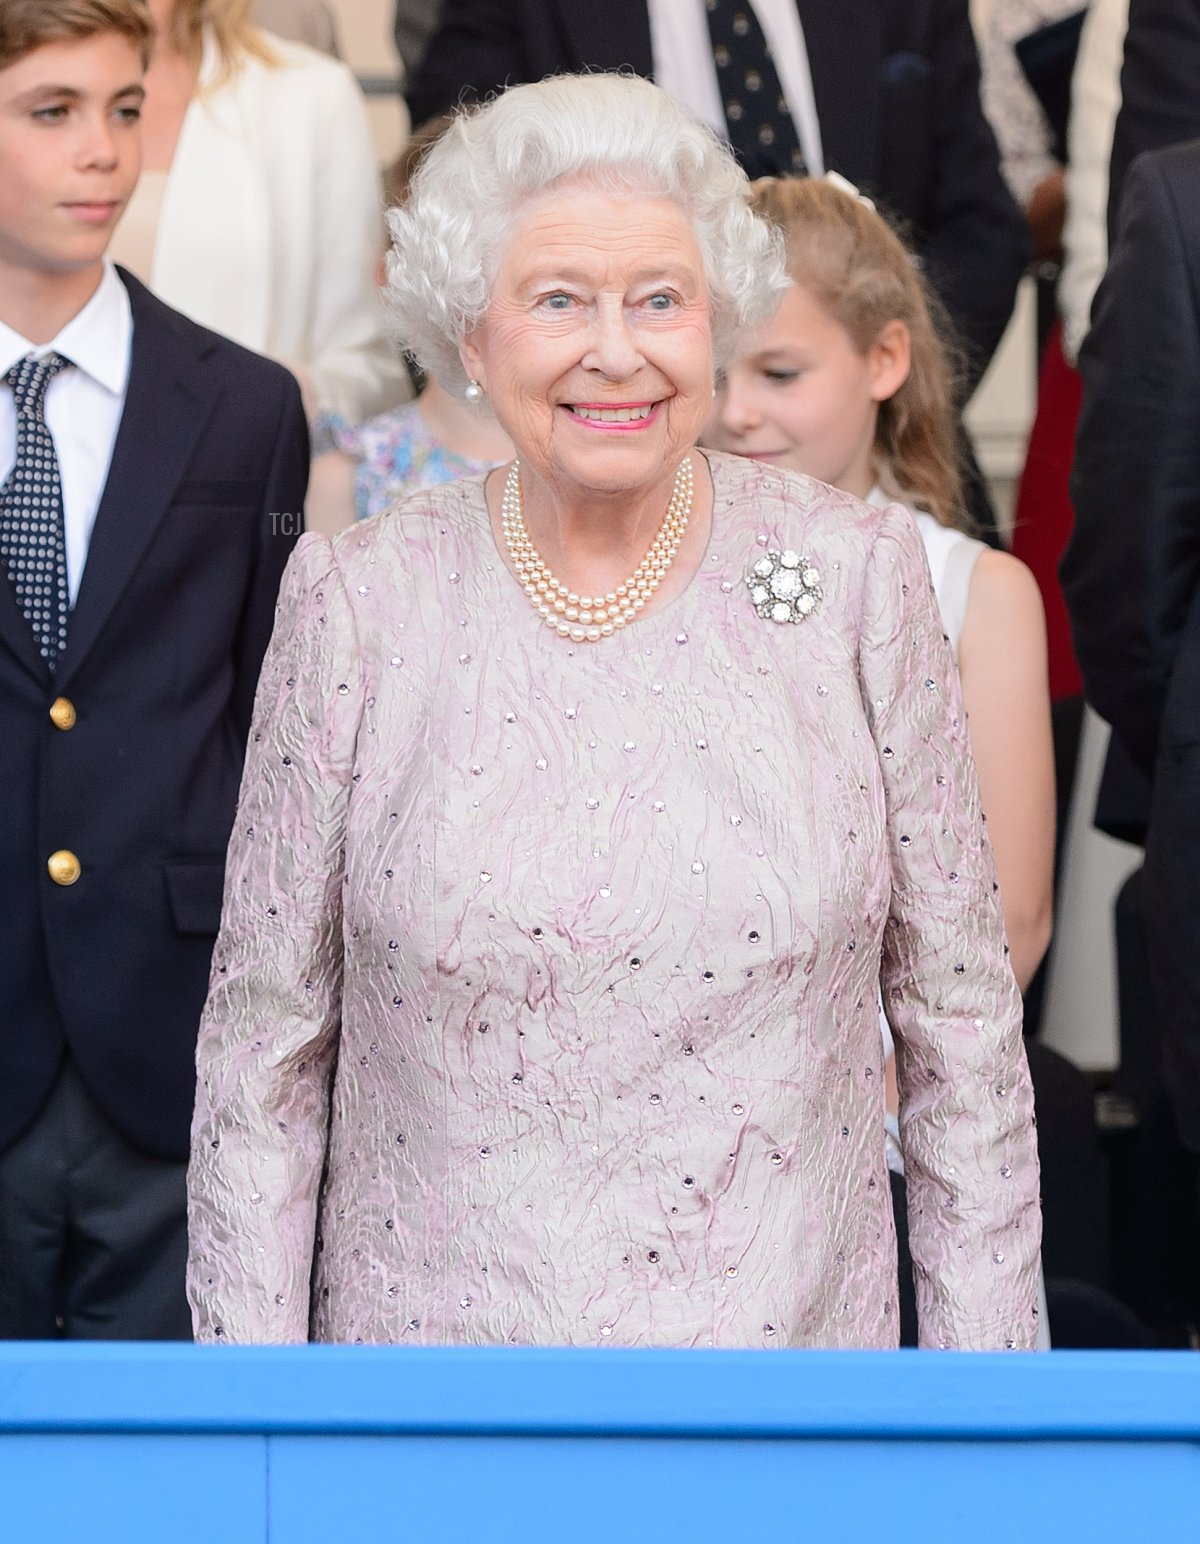 Queen Elizabeth II in the royal box during the Coronation Festival Evening Gala at Buckingham Palace on July 11, 2013 in London, England